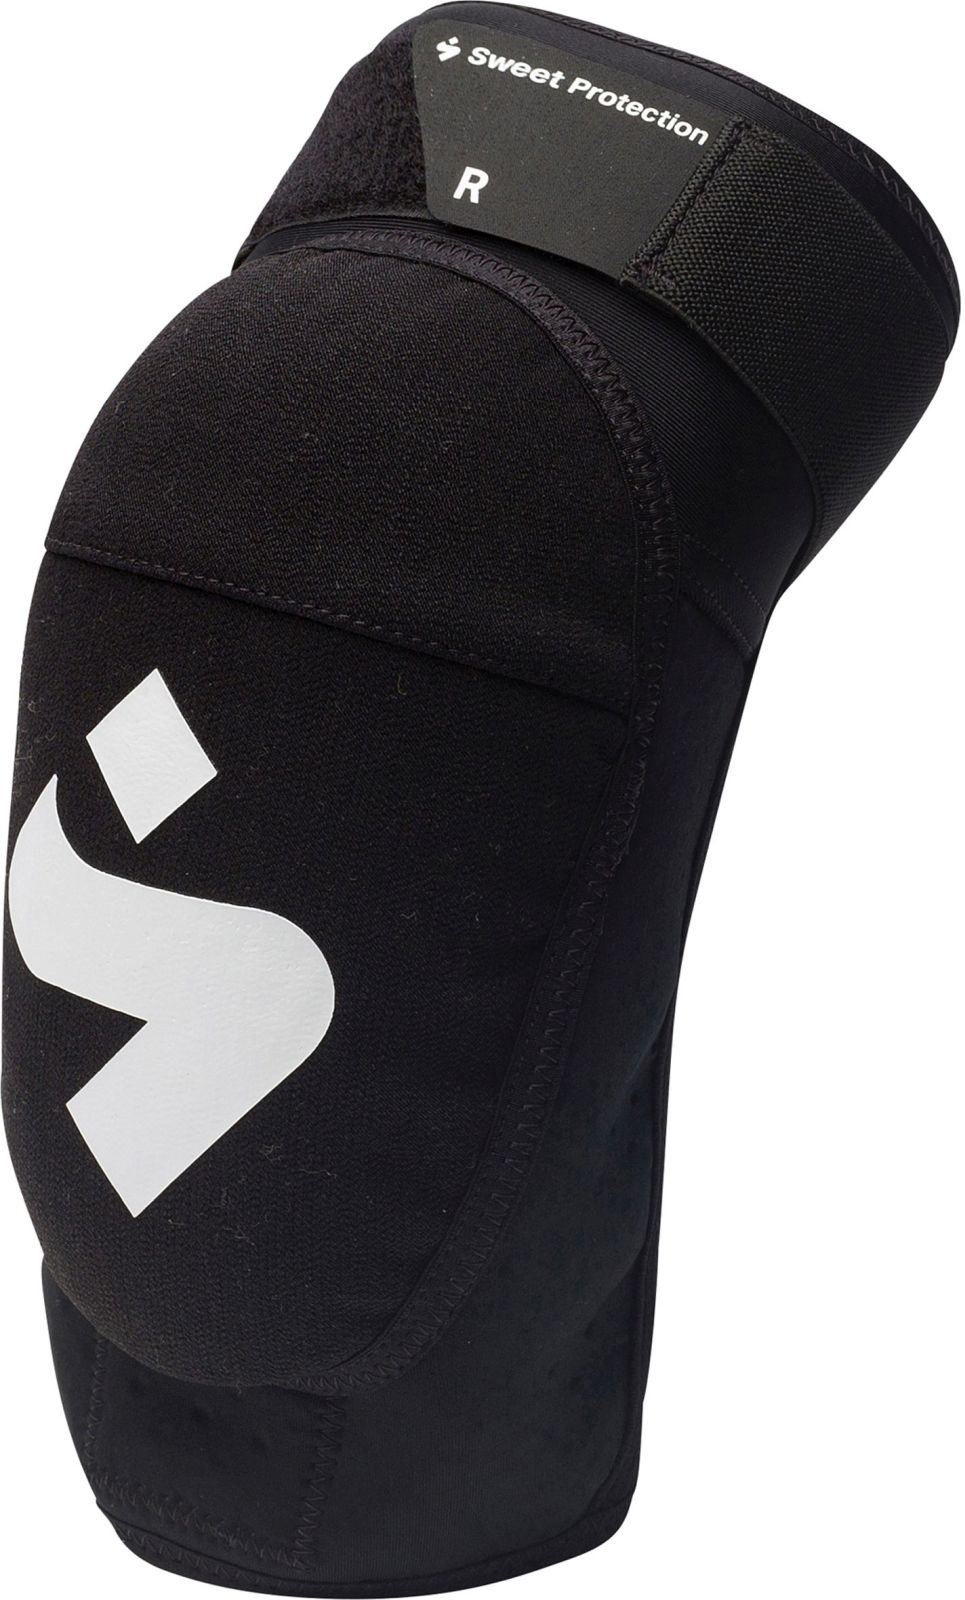 Sweet Protection Knee Pads - black L